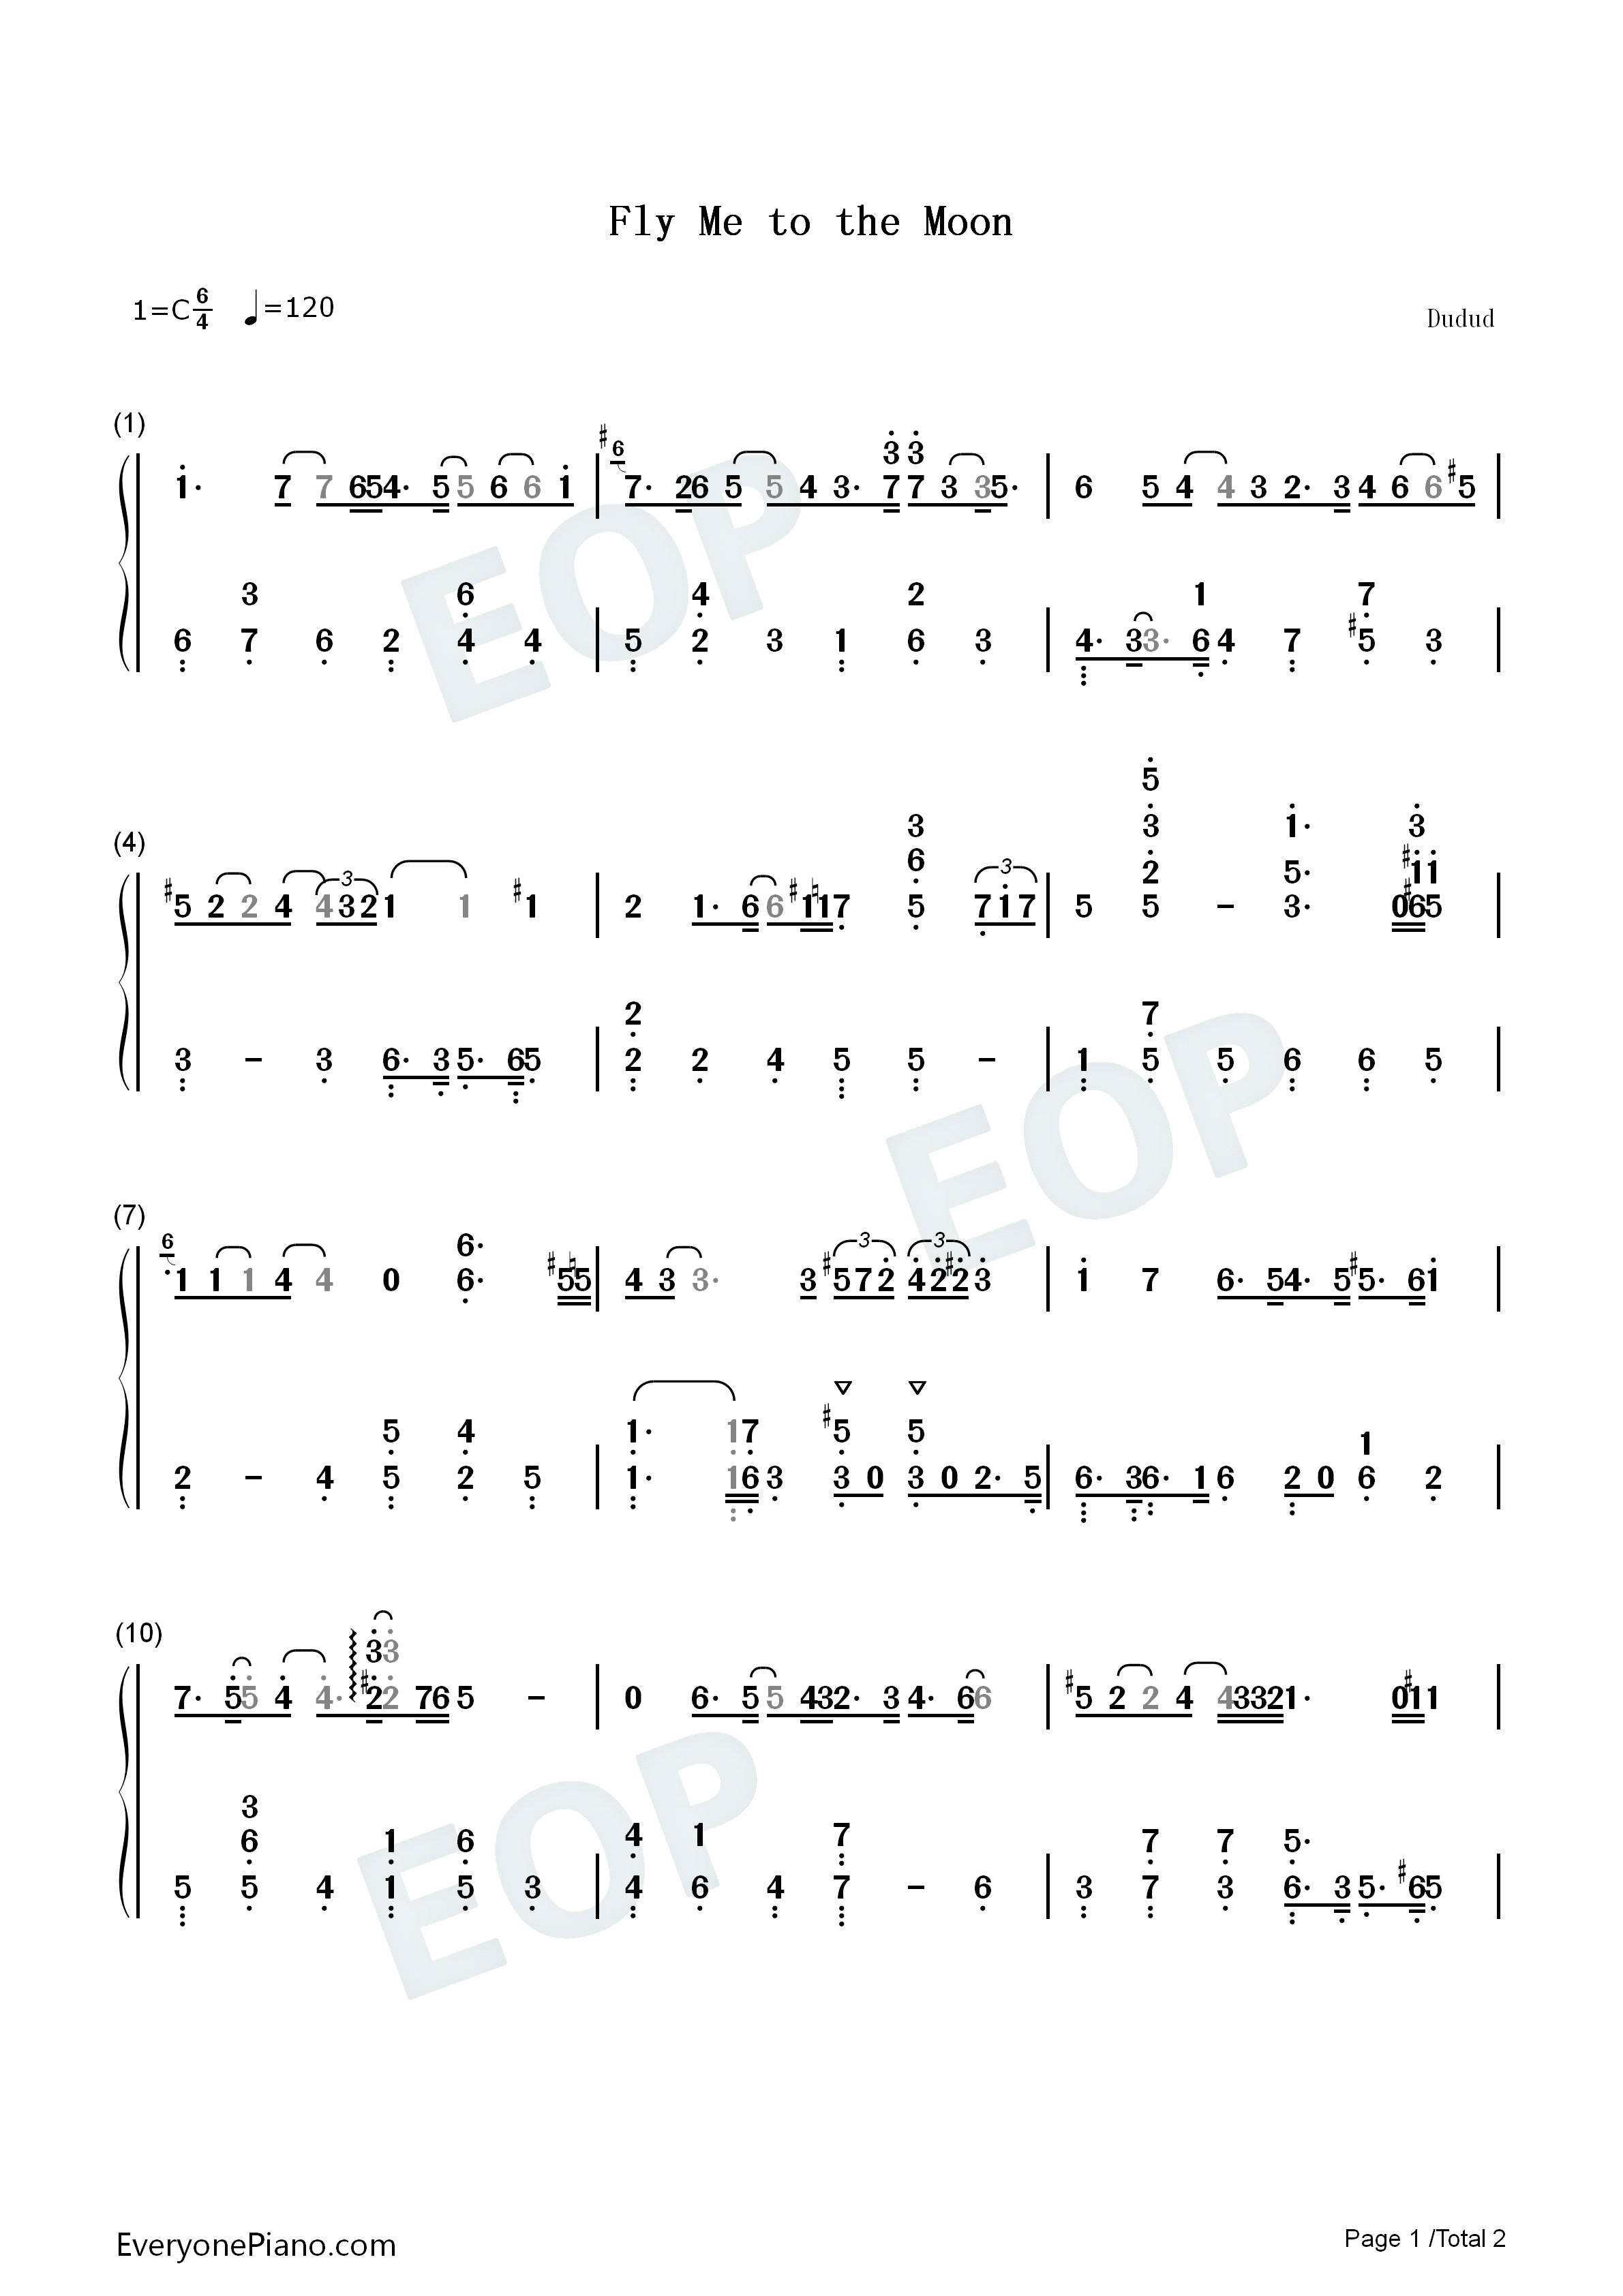 Fly me to the moon bart howard numbered musical notation preview 1 listen now print sheet fly me to the moon bart howard numbered musical notation preview 1 hexwebz Choice Image